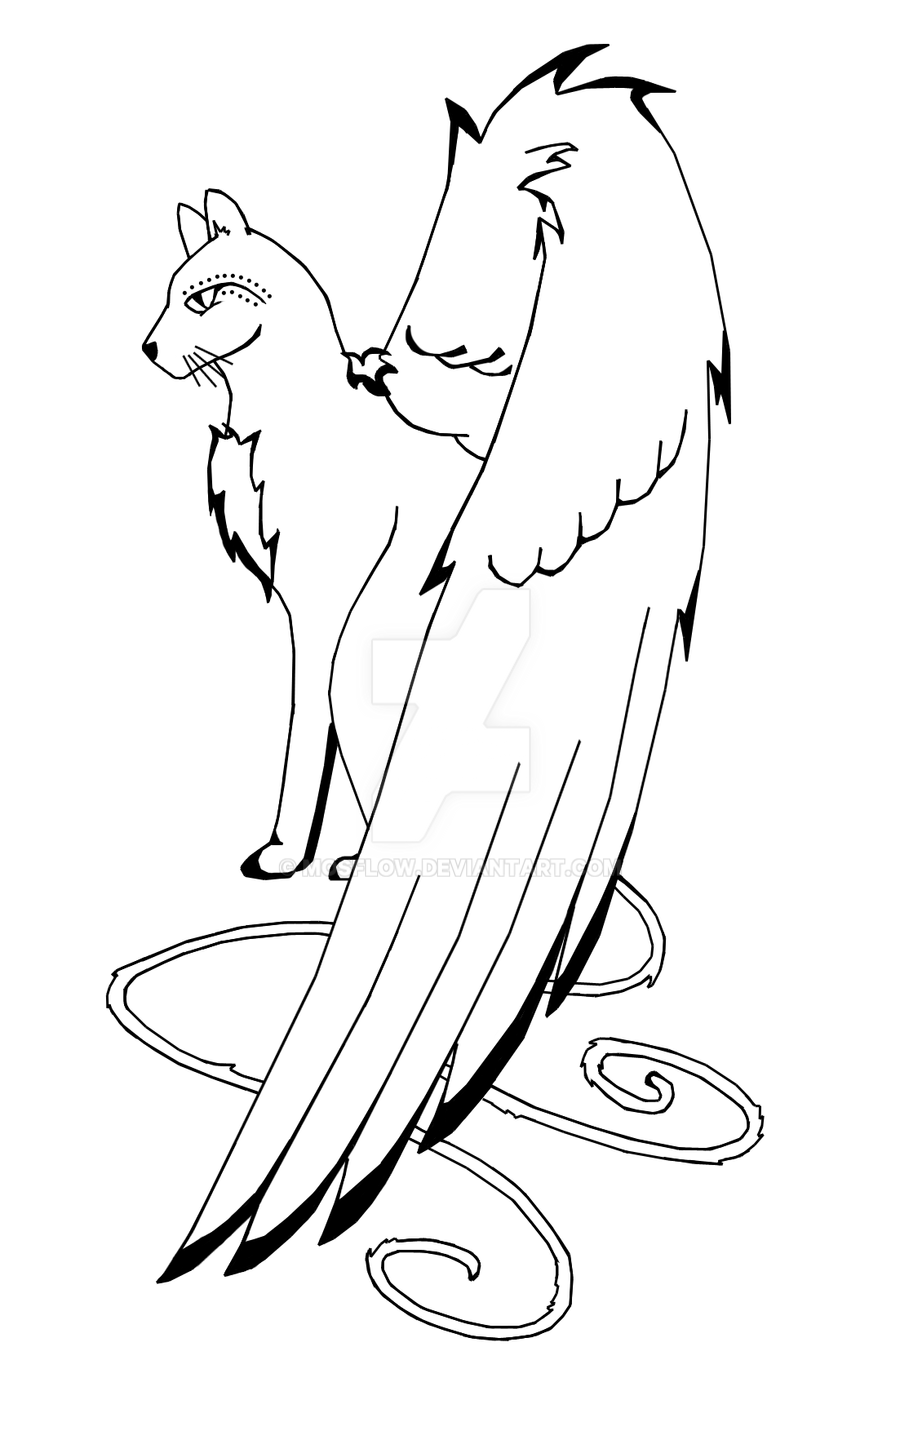 It's just a graphic of Impeccable Cat With Wings Coloring Pages